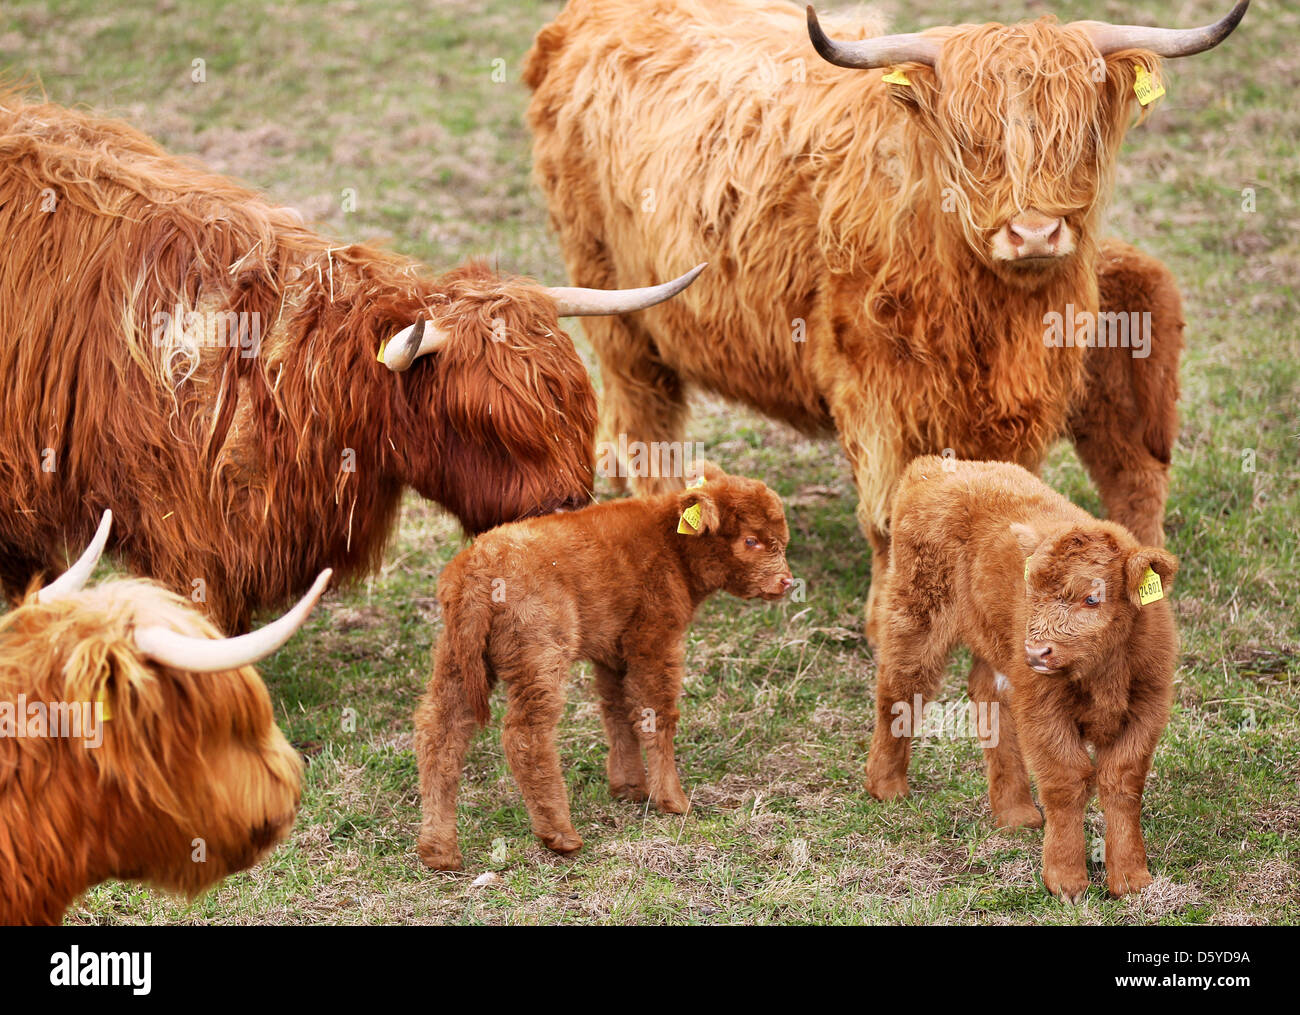 Scottish Highland Cattle and calfs stand on a pasture near Grossenhain, Germany, 04 April 2012. The robust yet good - Stock Image